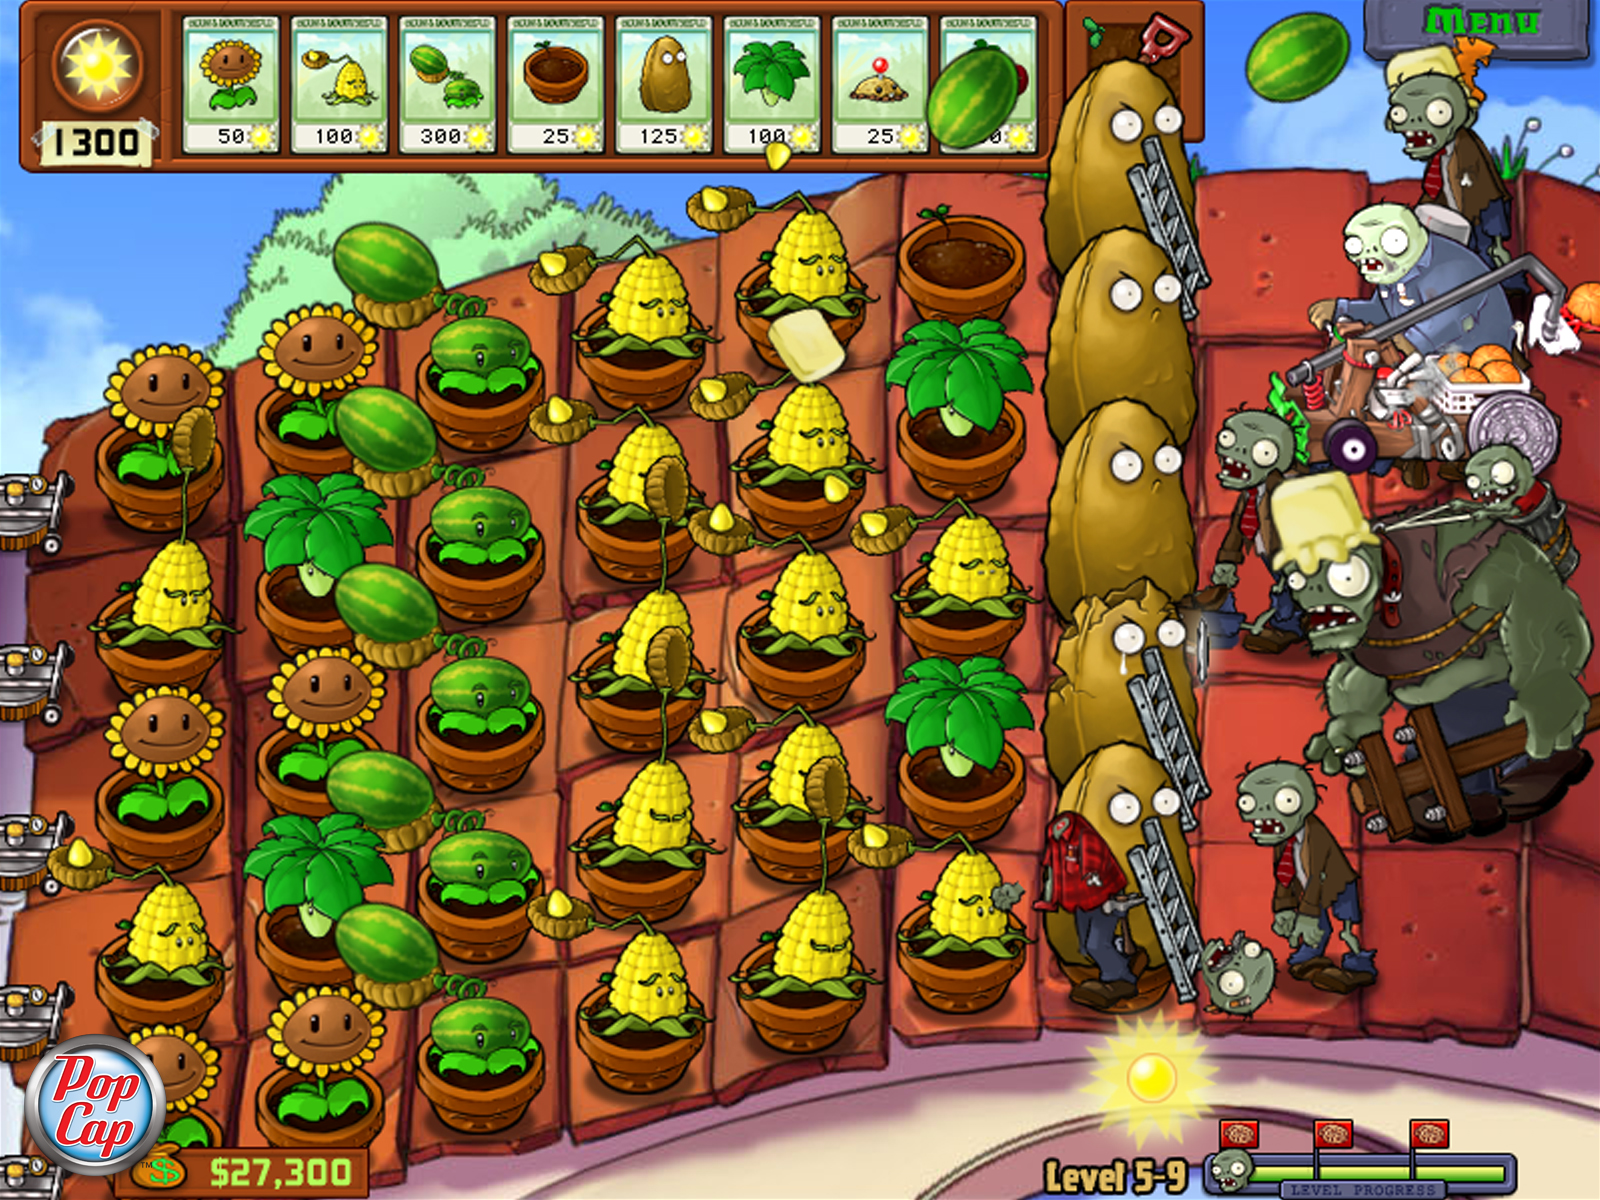 http://www.abload.de/img/plants_vs_zombies_scrudc1h.jpg